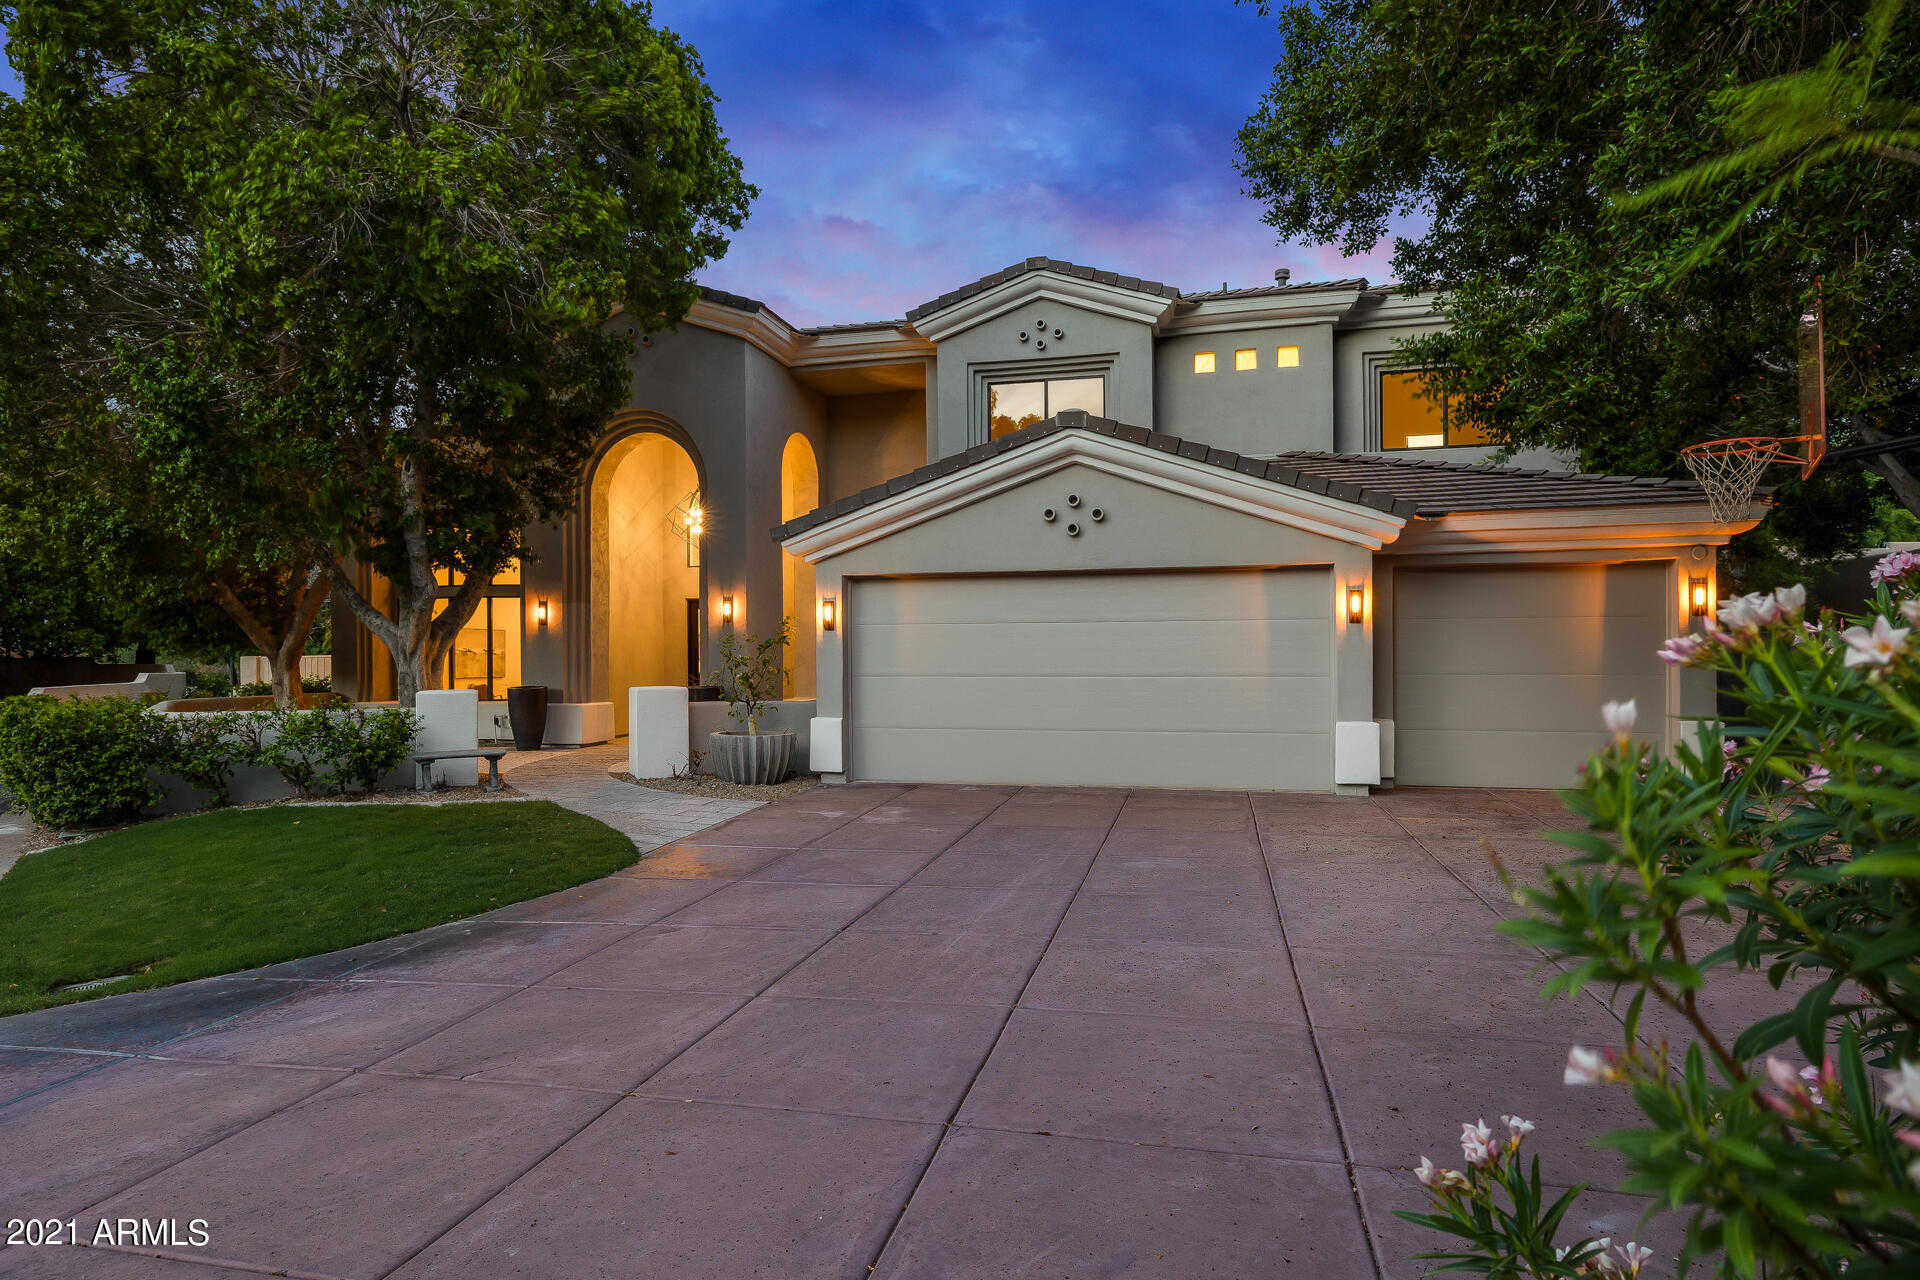 $2,750,000 - 6Br/4Ba - Home for Sale in Estates At Cholla Amd, Paradise Valley